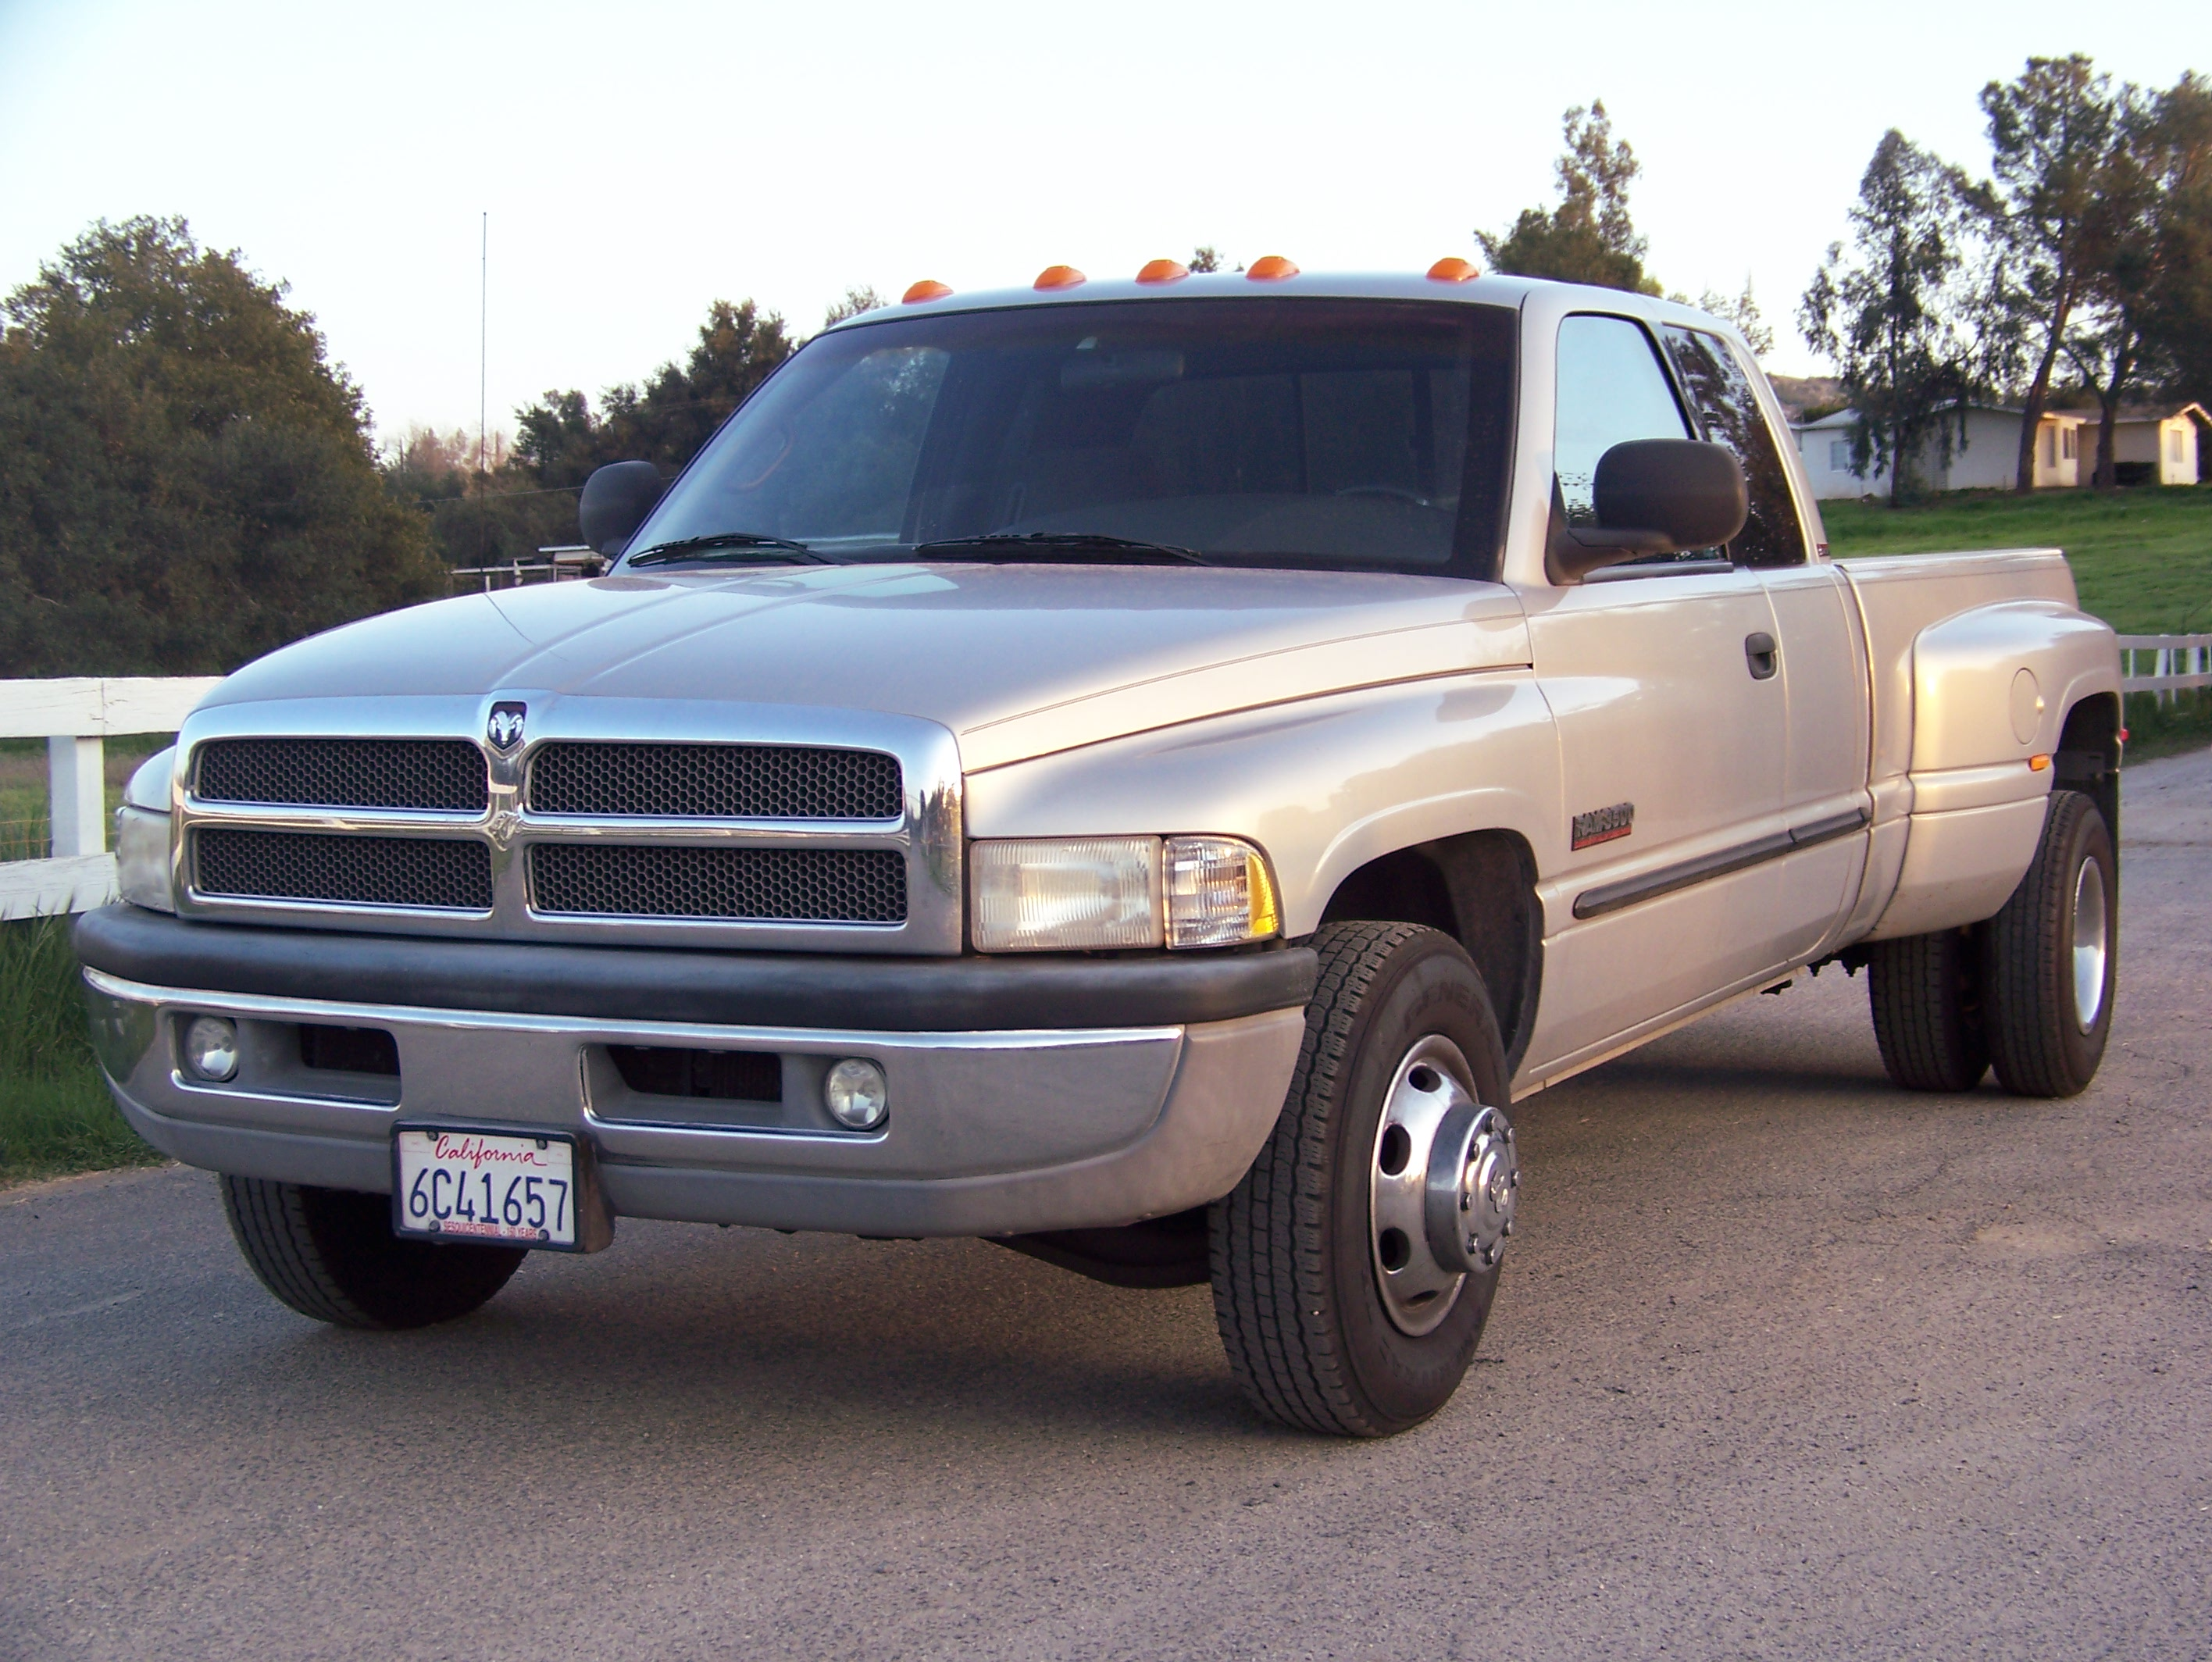 2000 dodge ram pickup 3500 photos informations articles. Black Bedroom Furniture Sets. Home Design Ideas